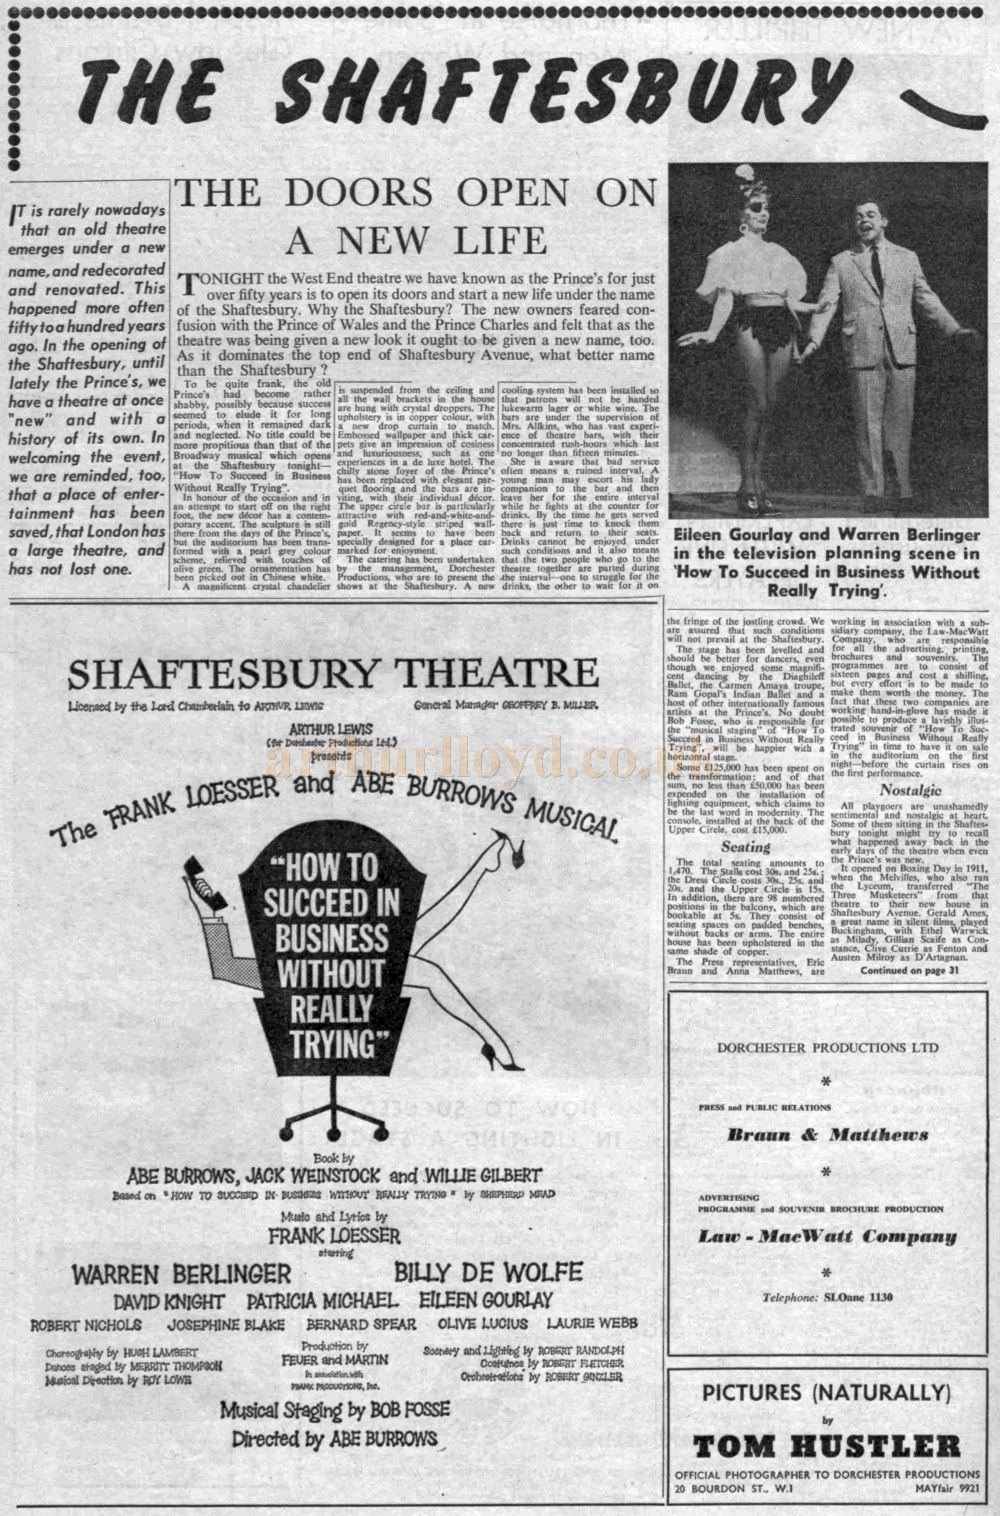 An article on the refurbishment of the Prince's Theatre and its change of name to the Shaftesbury Theatre - From The Stage, 28th March 1963.